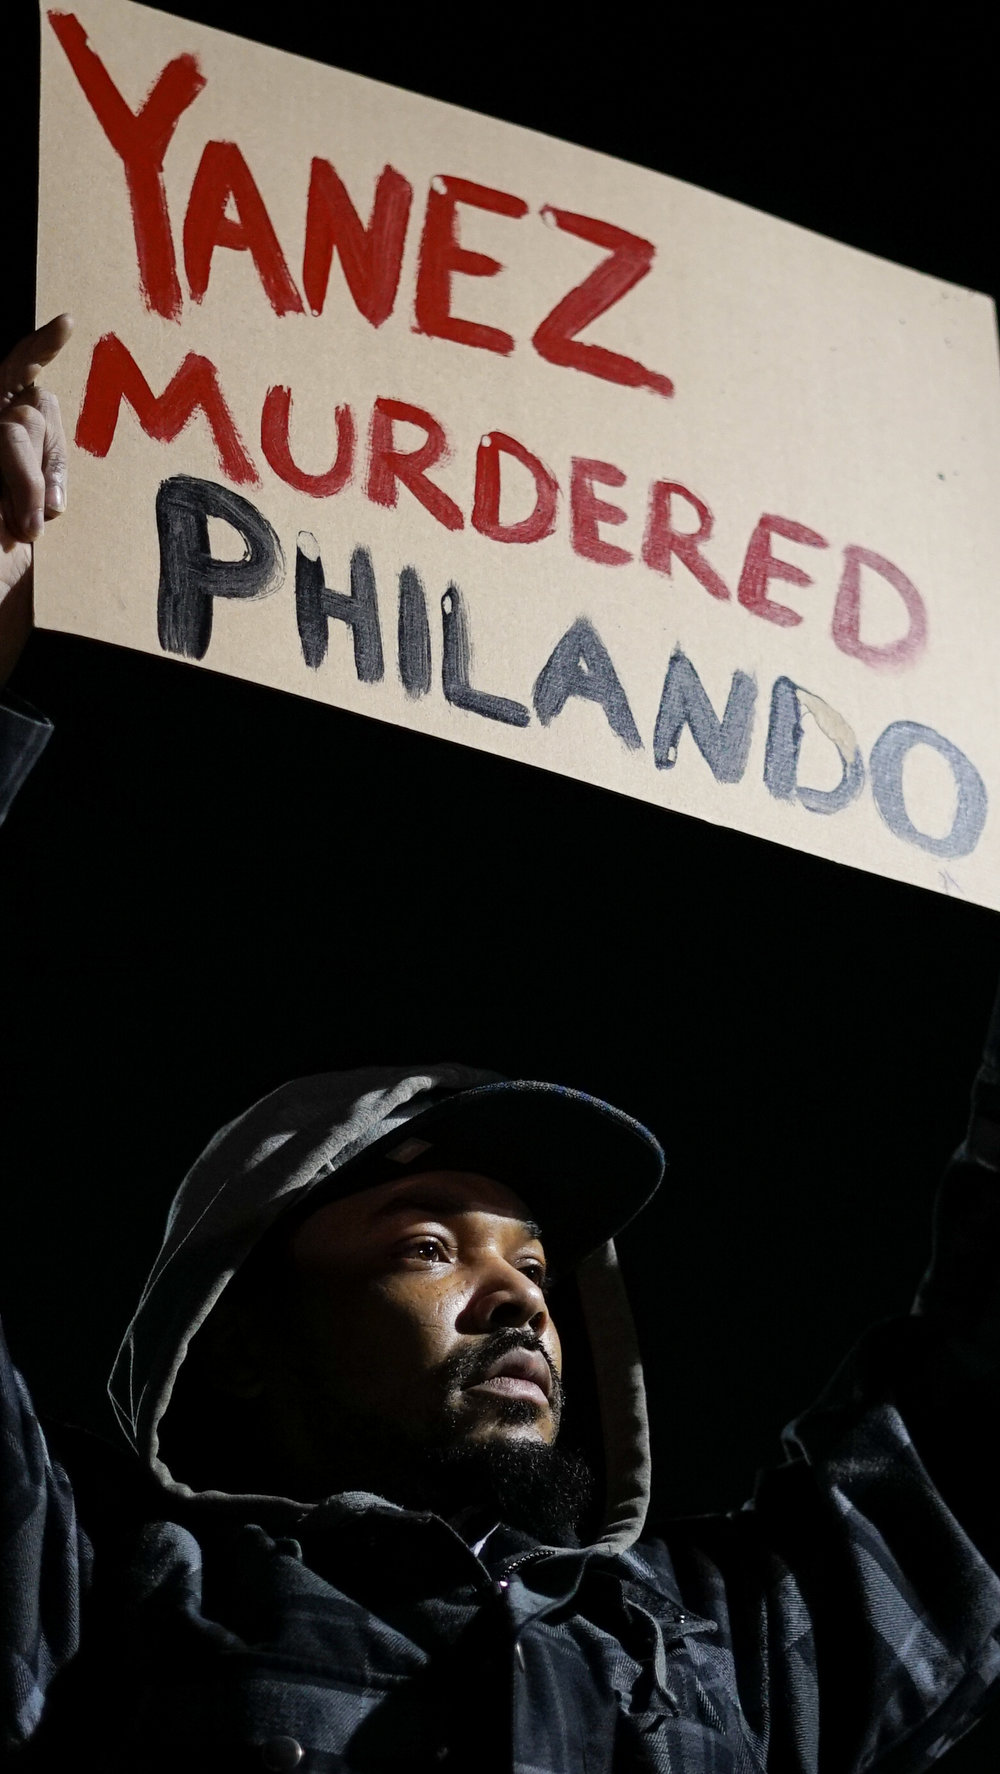 """Darius Taylor, a childhood friend of Philando Castile, said he """"was a good brother who didn't deserve that,"""" at a rally Wednesday, Nov. 16, 2016, to celebrate charges filed against the officer who shot and killed Castile."""